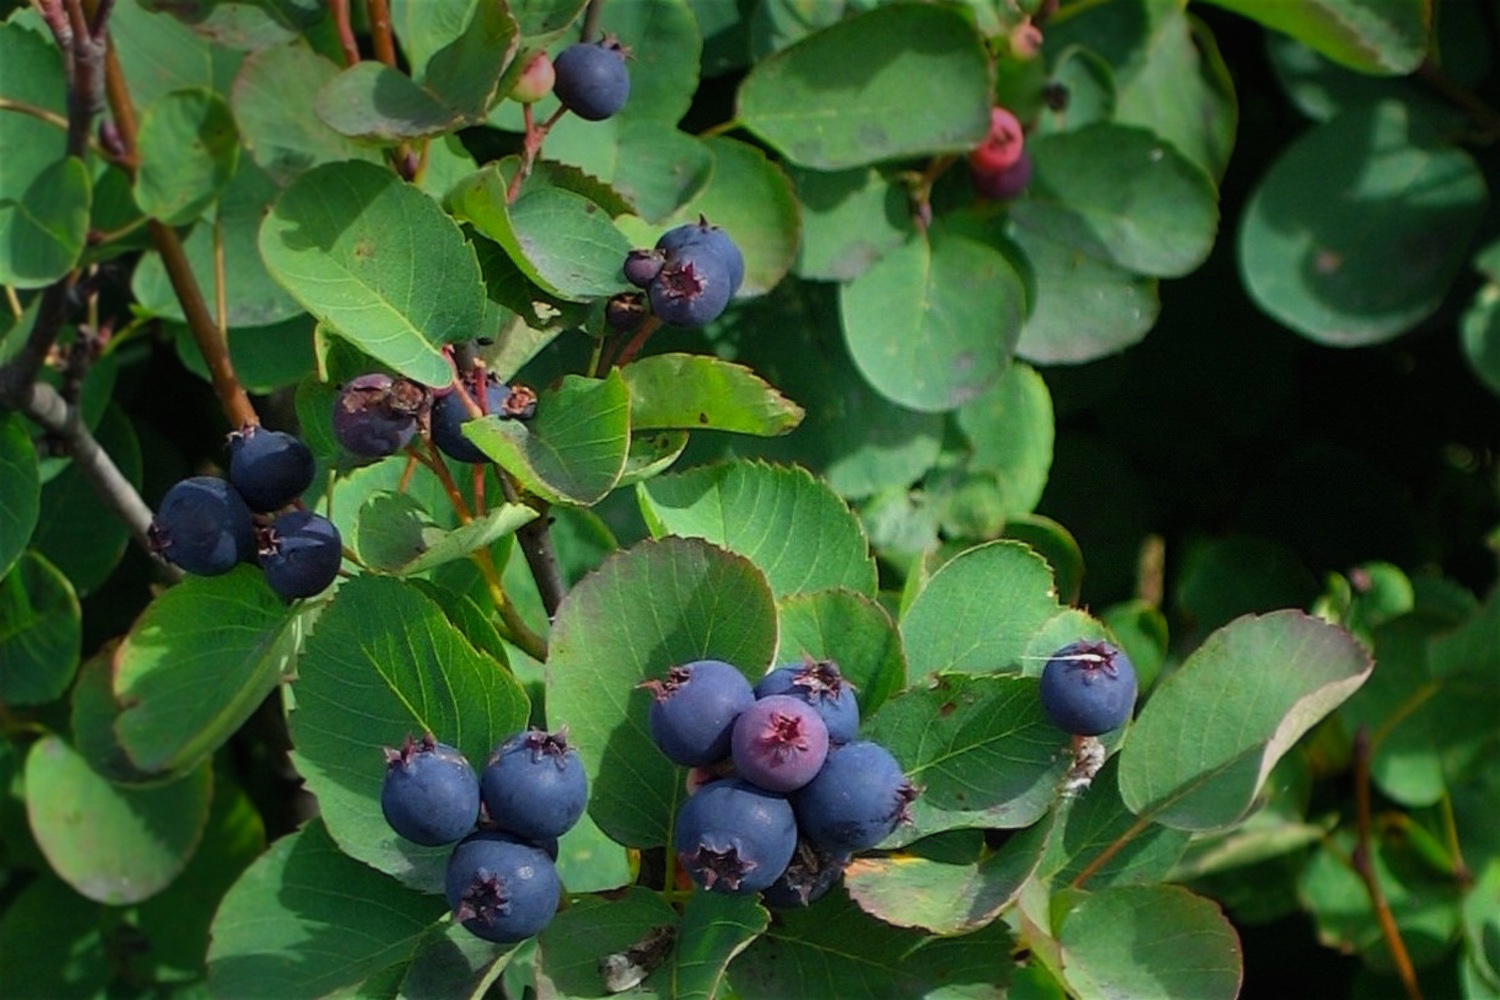 Saskatoons ( Amelanchier alnifolia ) are ripe and ready for picking in July...